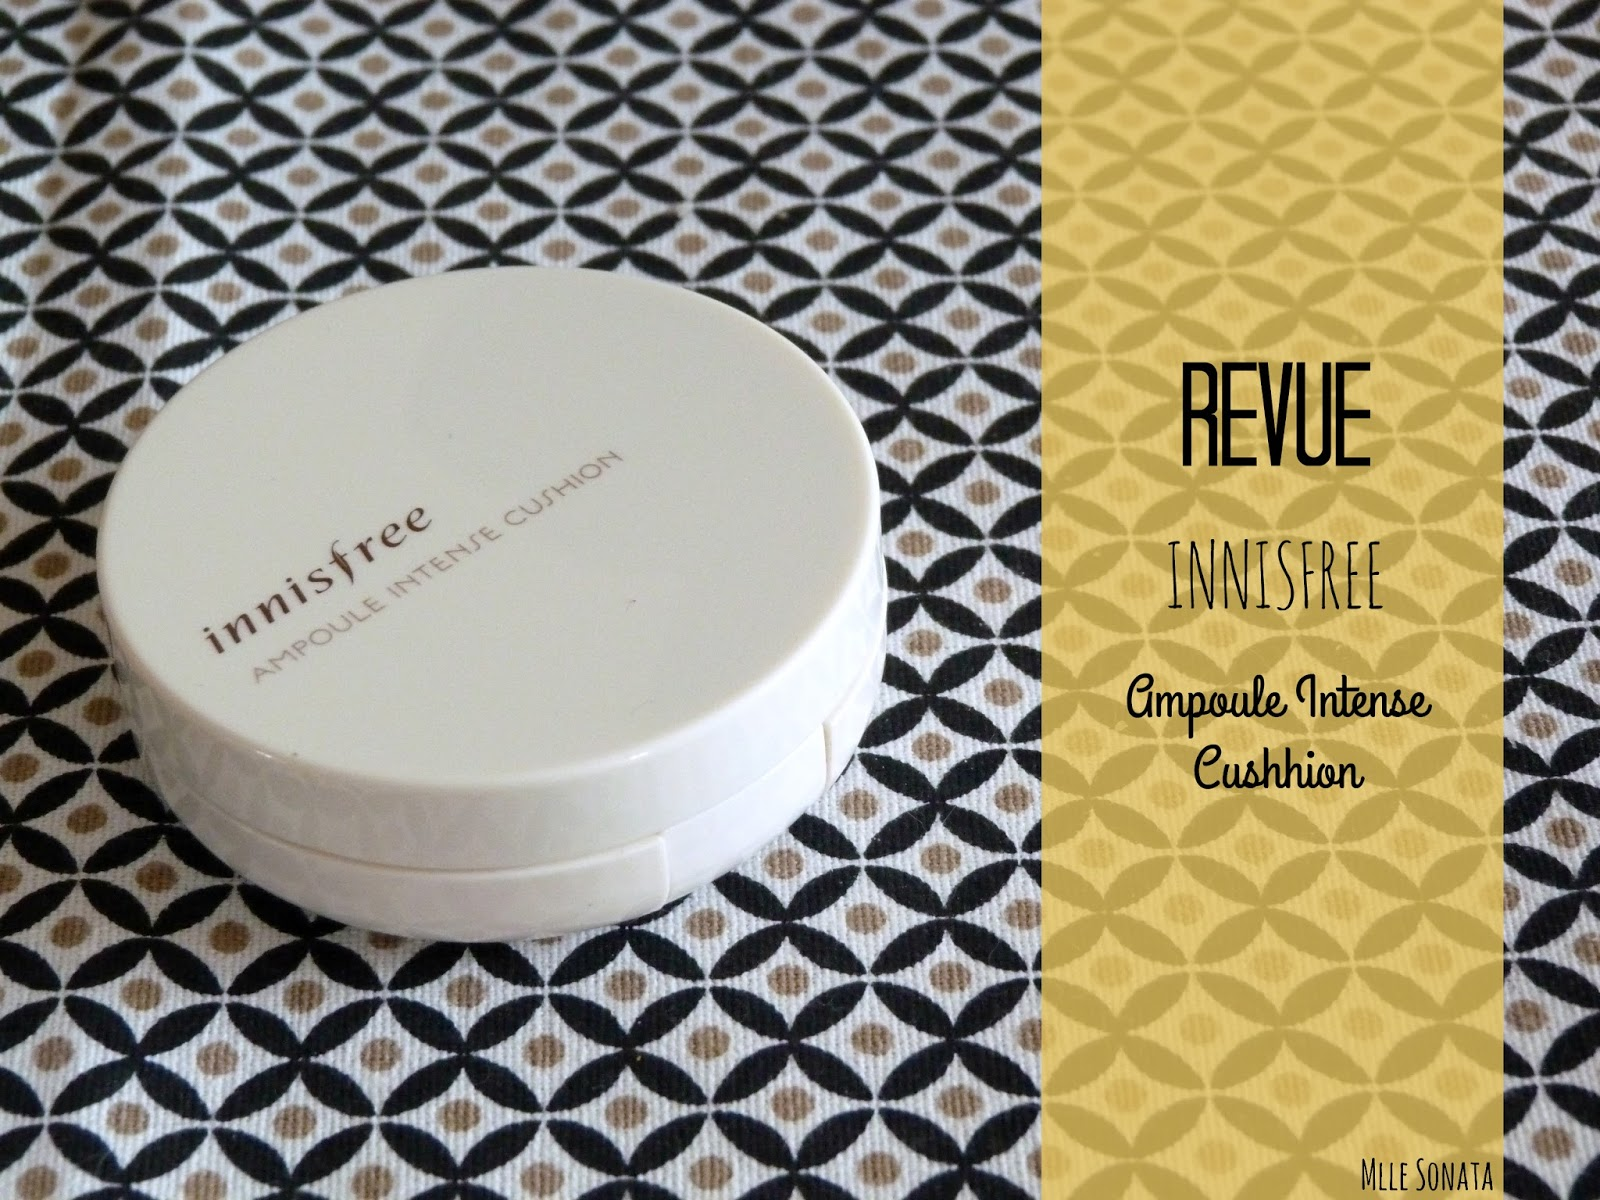 Ampoule Intense Cushion de Innisfree ouvert